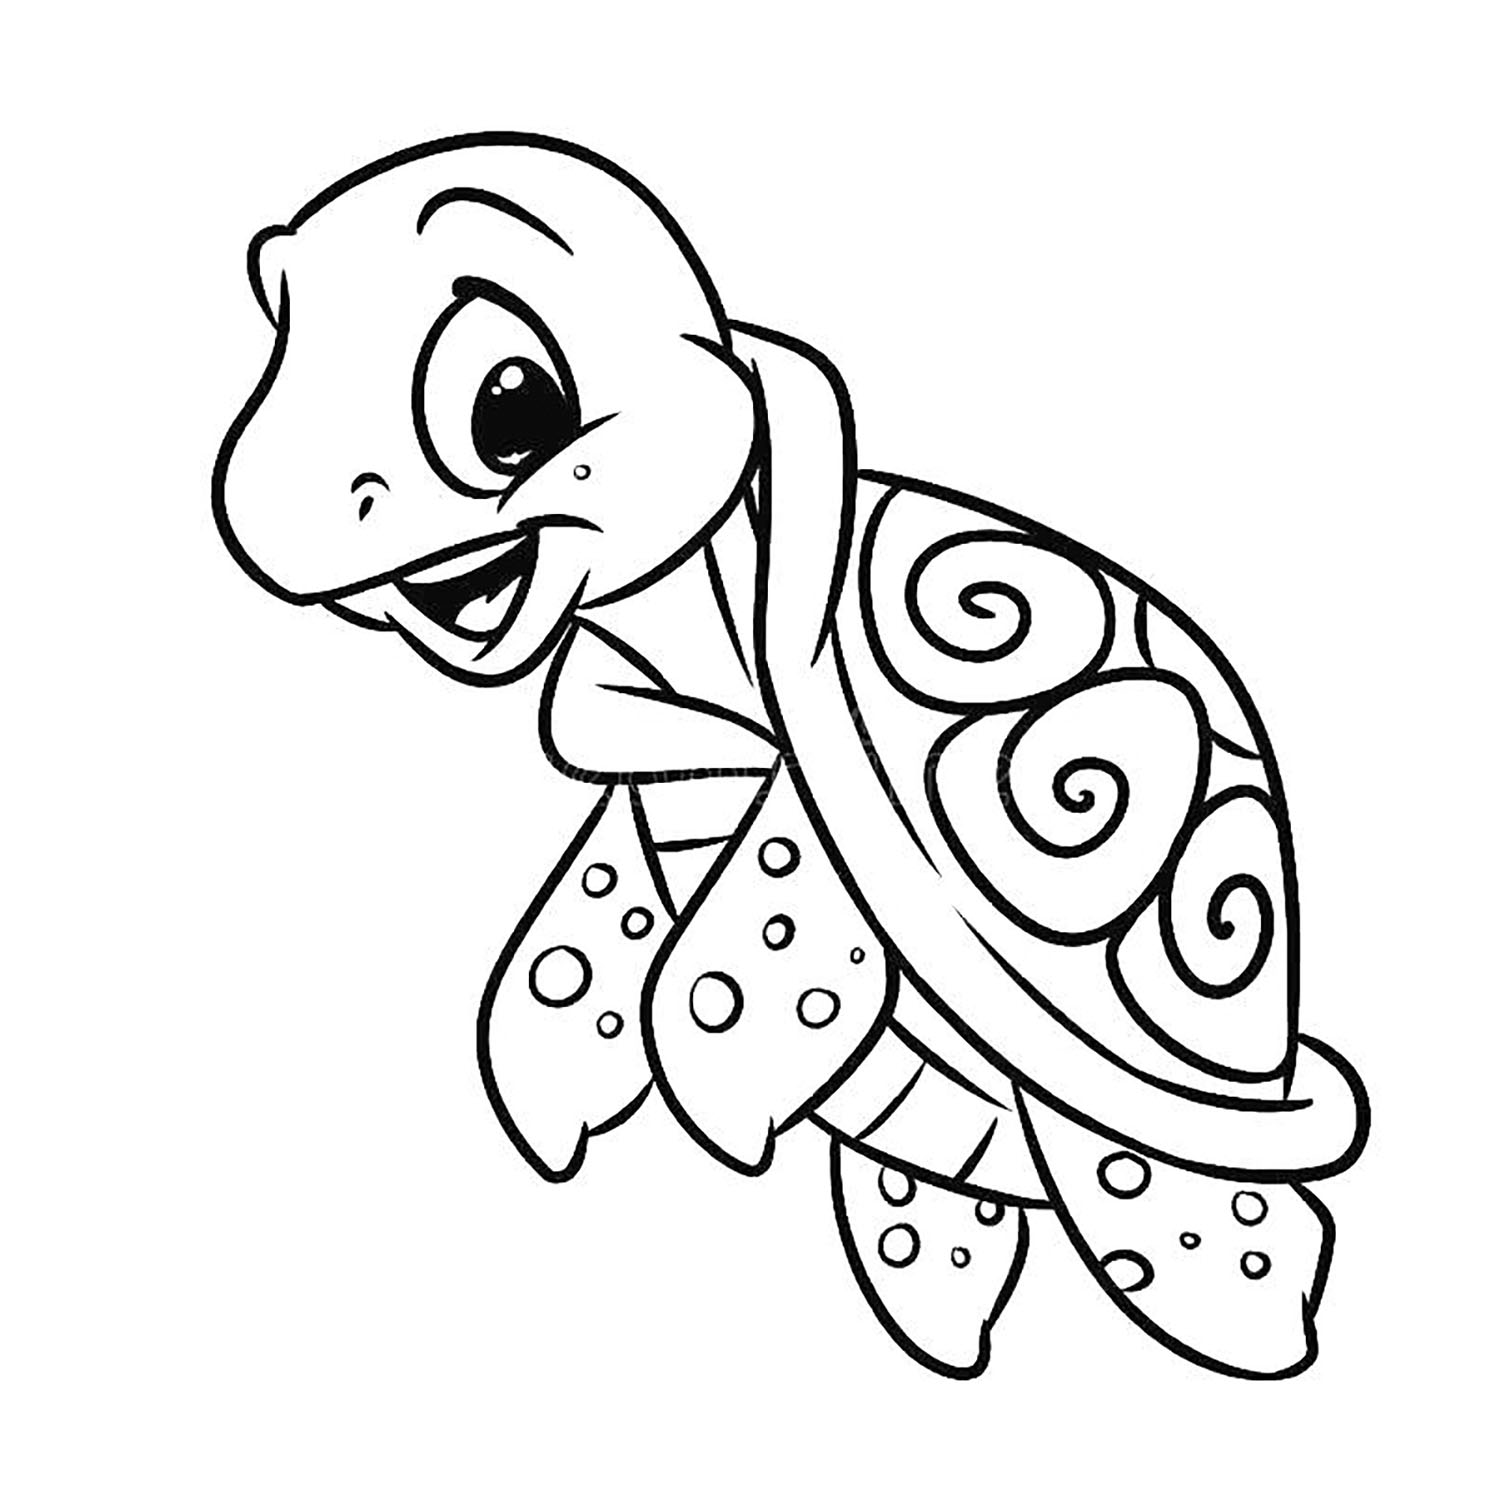 turtle coloring book page turtles coloring pages download and print turtles book coloring turtle page